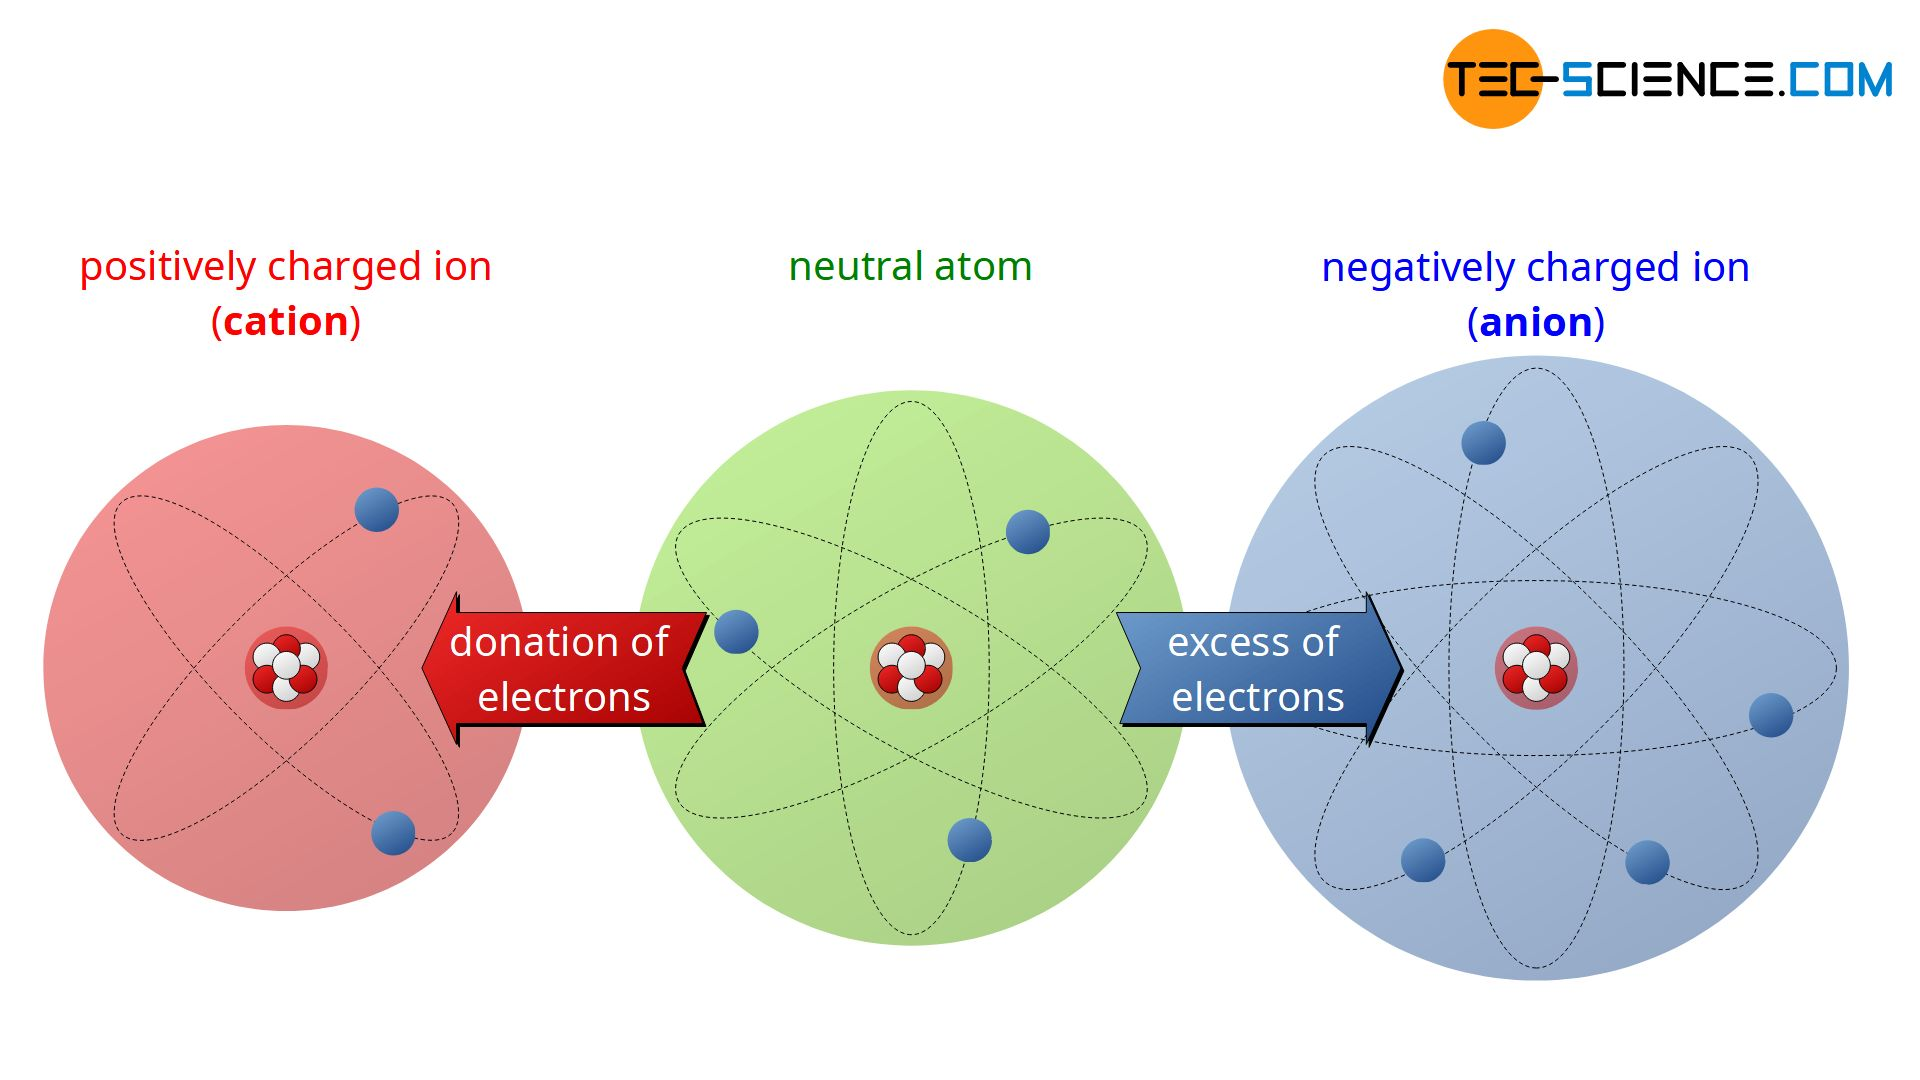 Ionization (cation and anion)